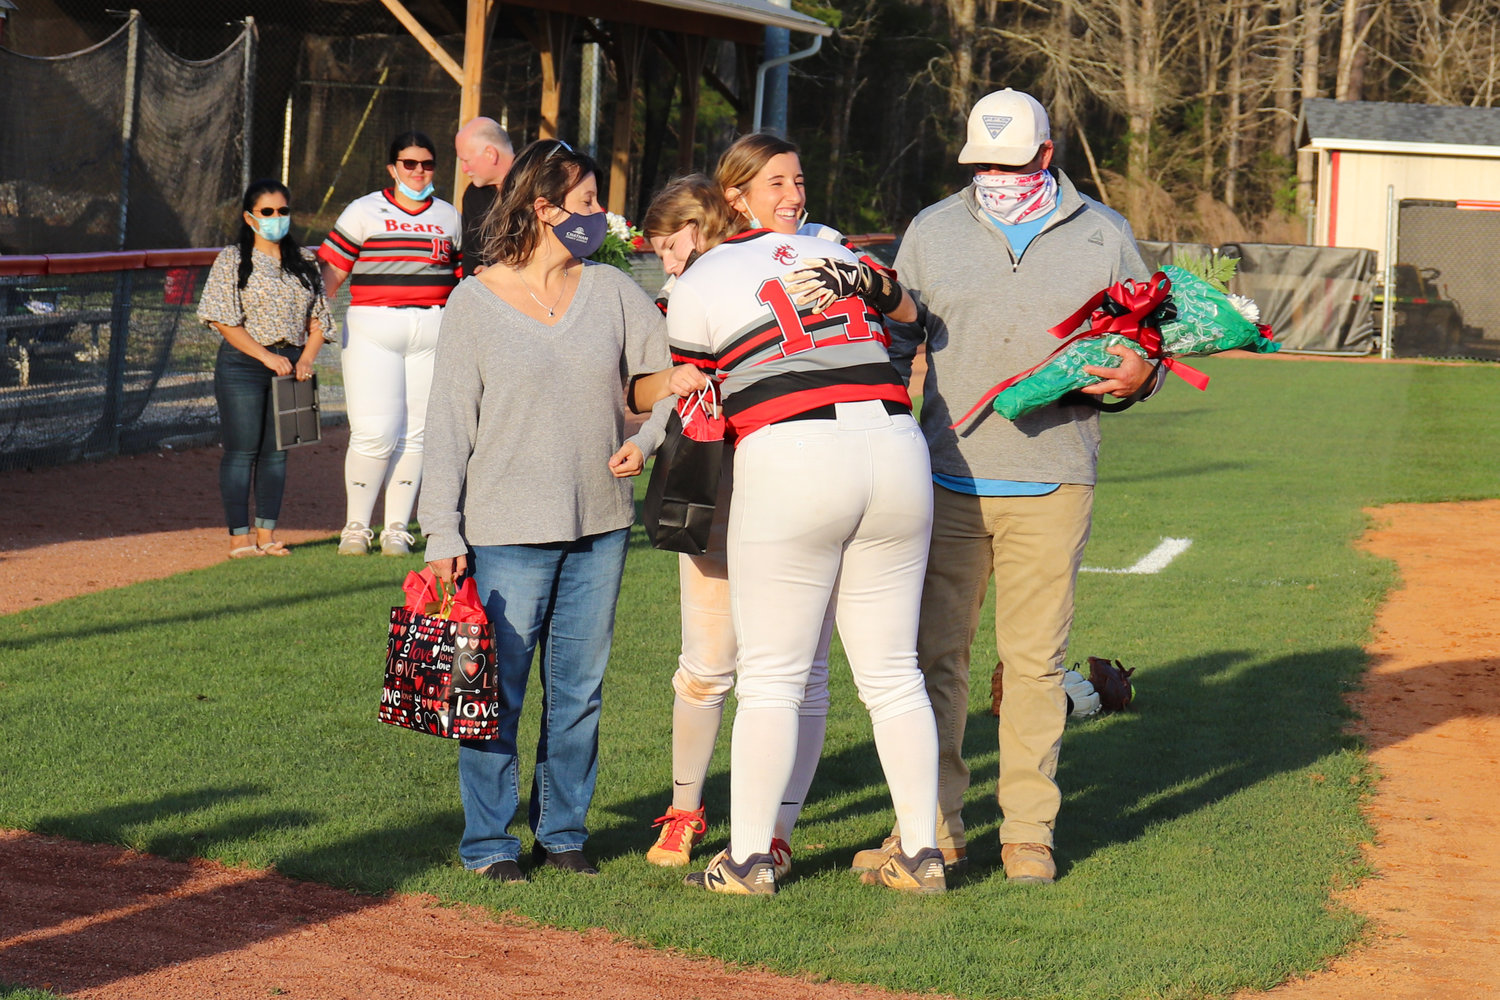 Chatham Central senior Mary Grace Murchison is hugged by her teammate, Mary Gaines (14), during the senior night festivities before her team's 12-0 win over North Rowan on March 30. Murchison went 1-for-3 with an RBI in the victory.